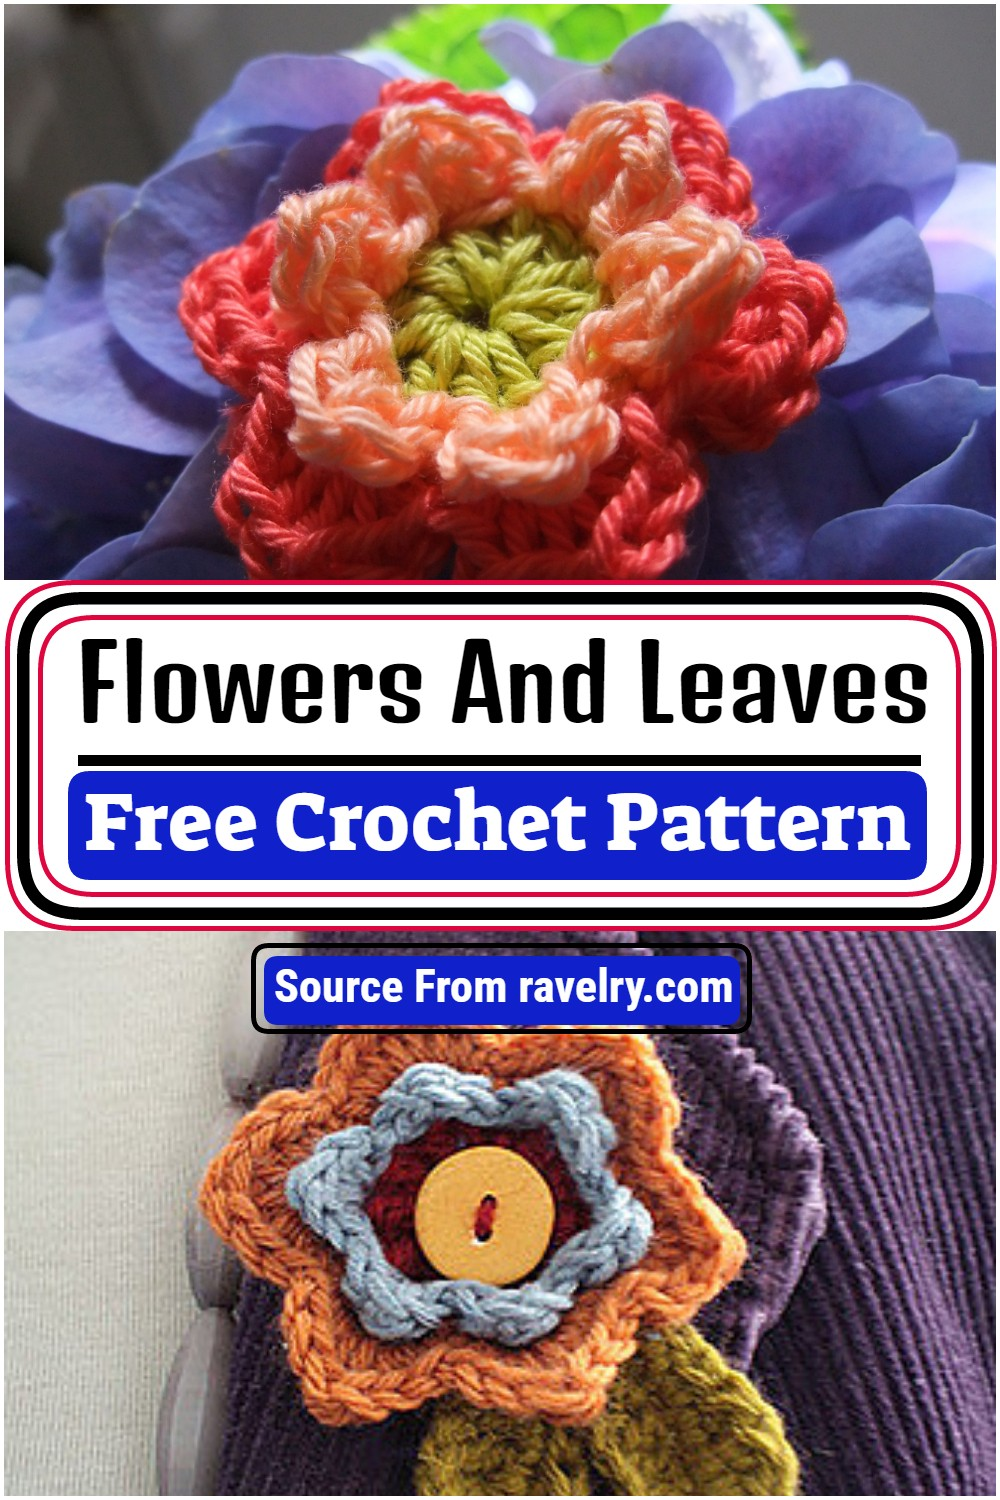 Free Crochet Flowers And Leaves Pattern